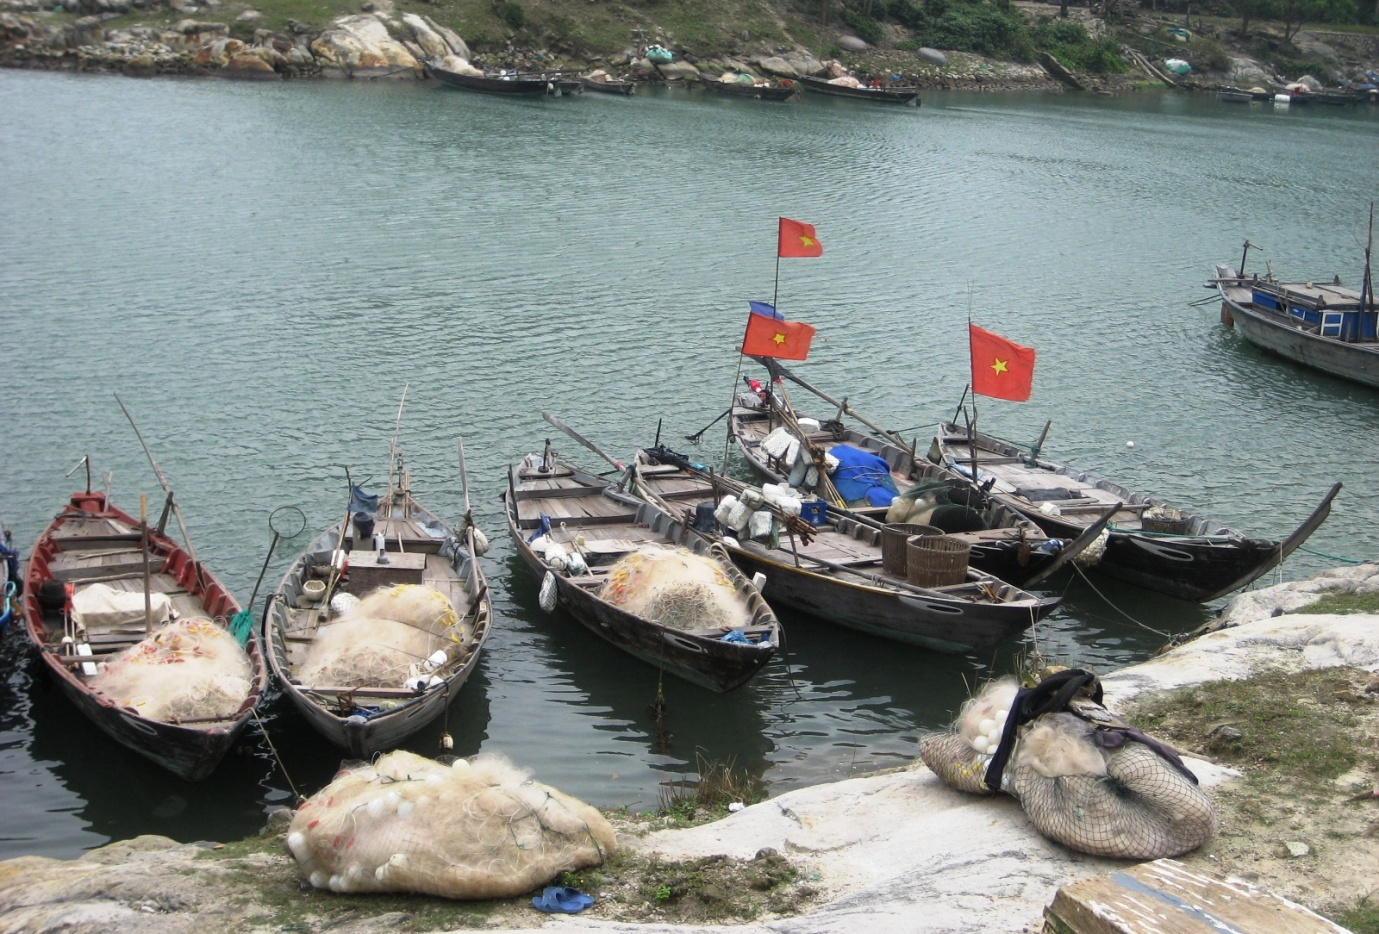 Huong fishing village